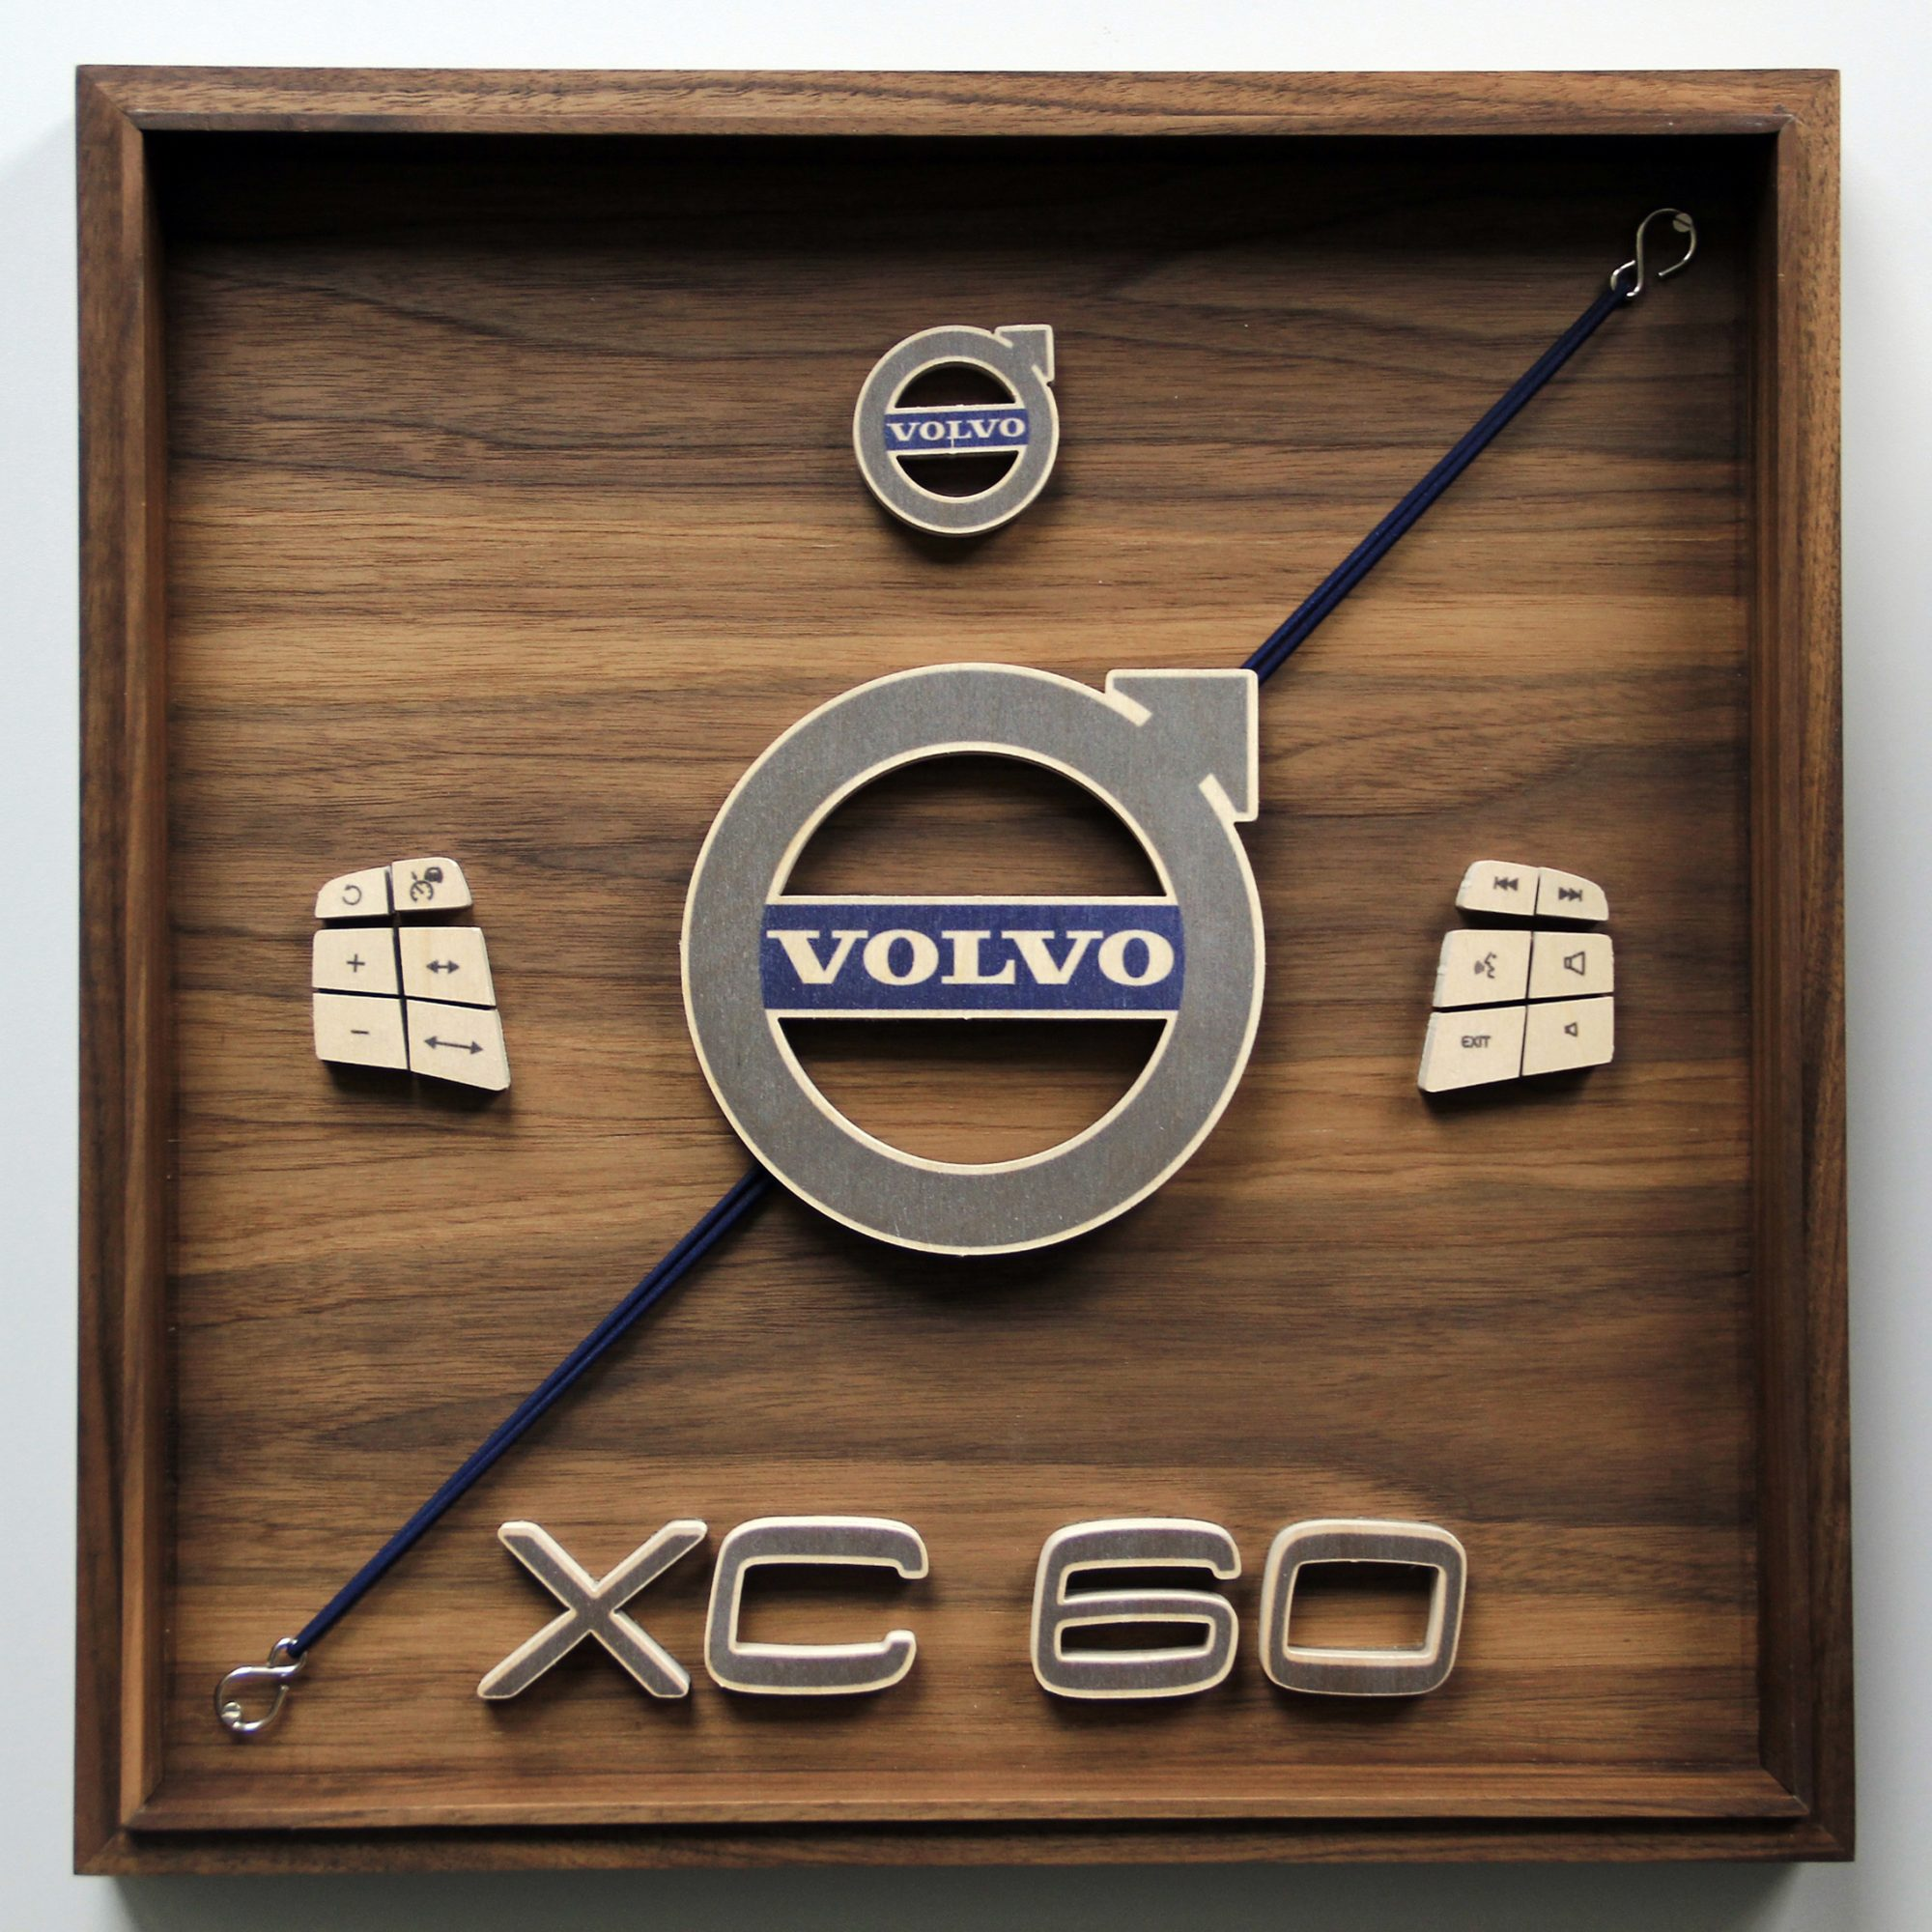 Volvo Design Contest